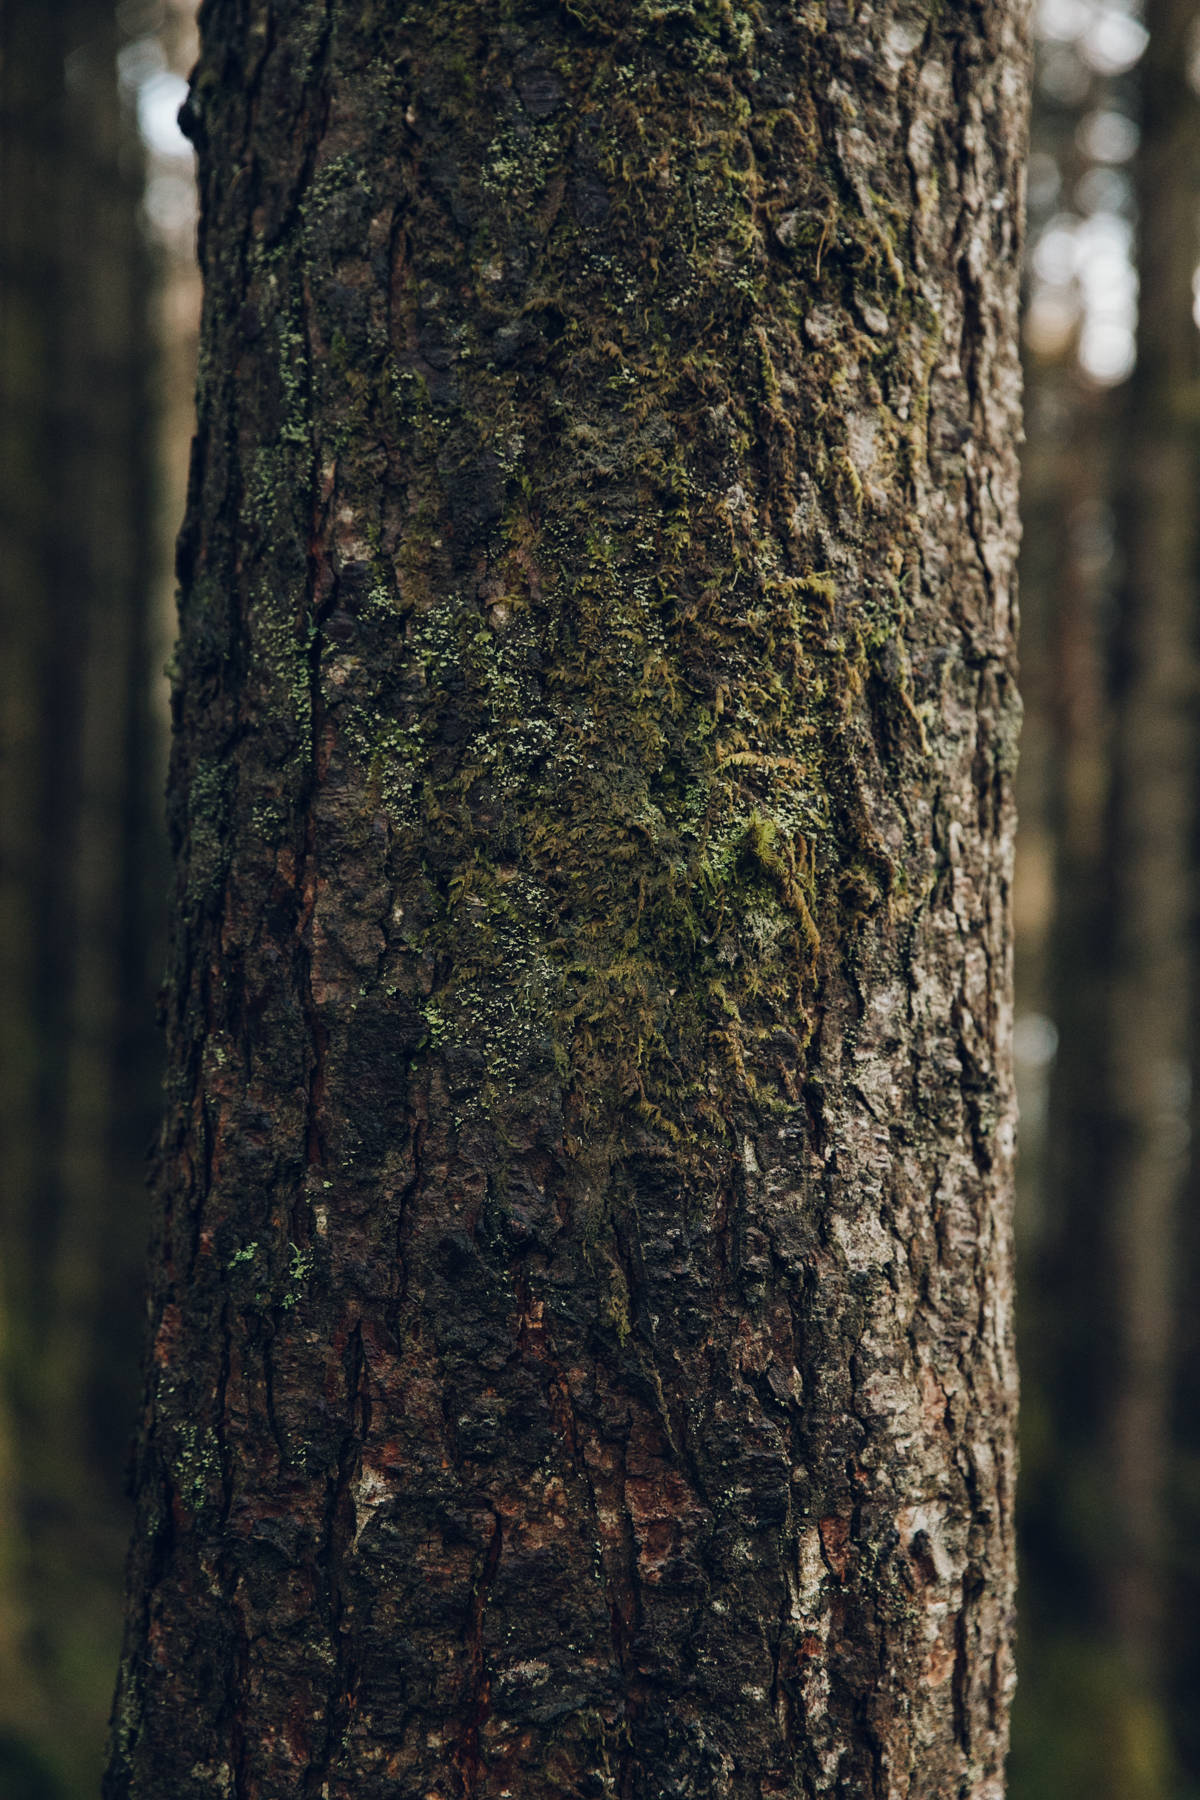 Tree textures in the woods.